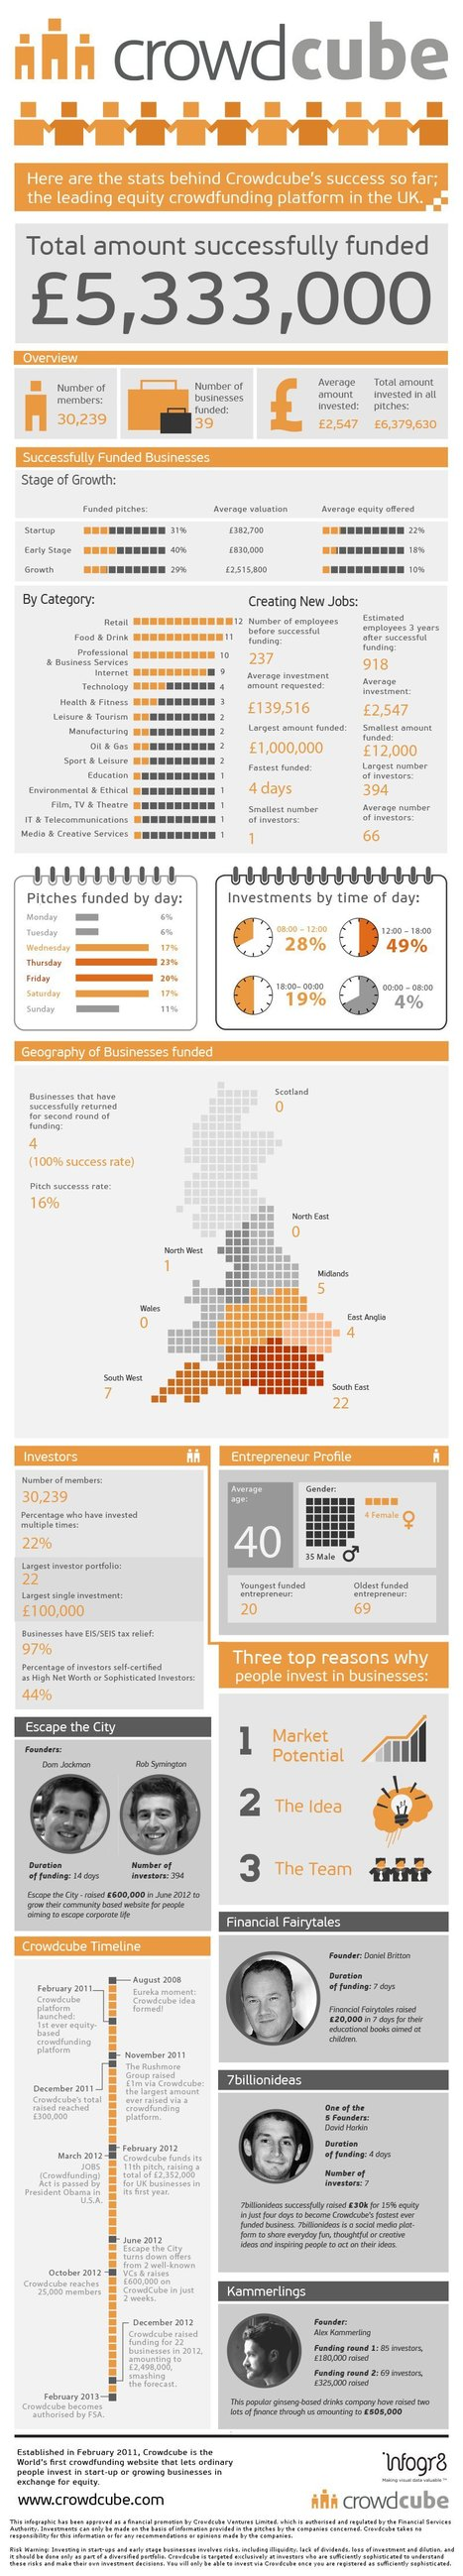 The story and stats behind Crowdcube's success so far #Infographic | Crowdfunding World | Scoop.it